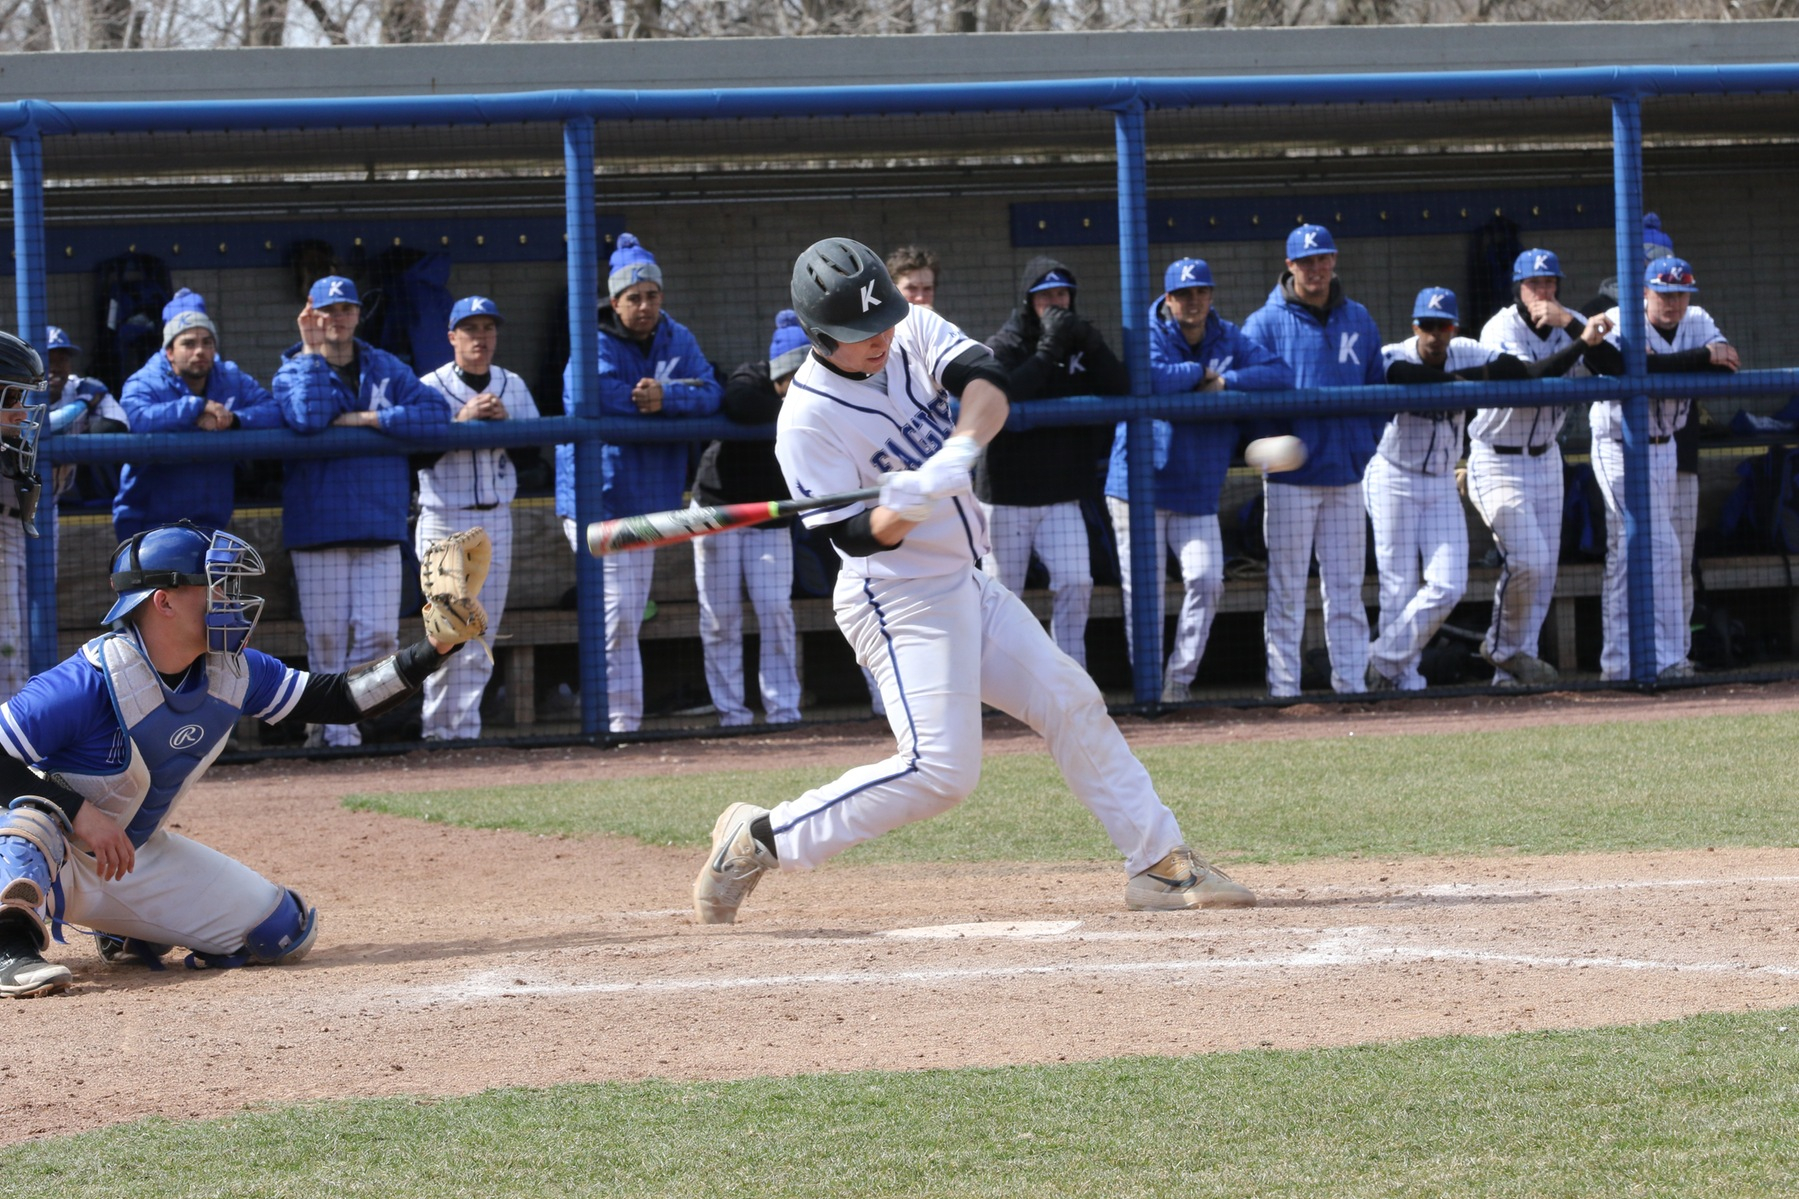 KCC baseball hits 5 HRs in sweep